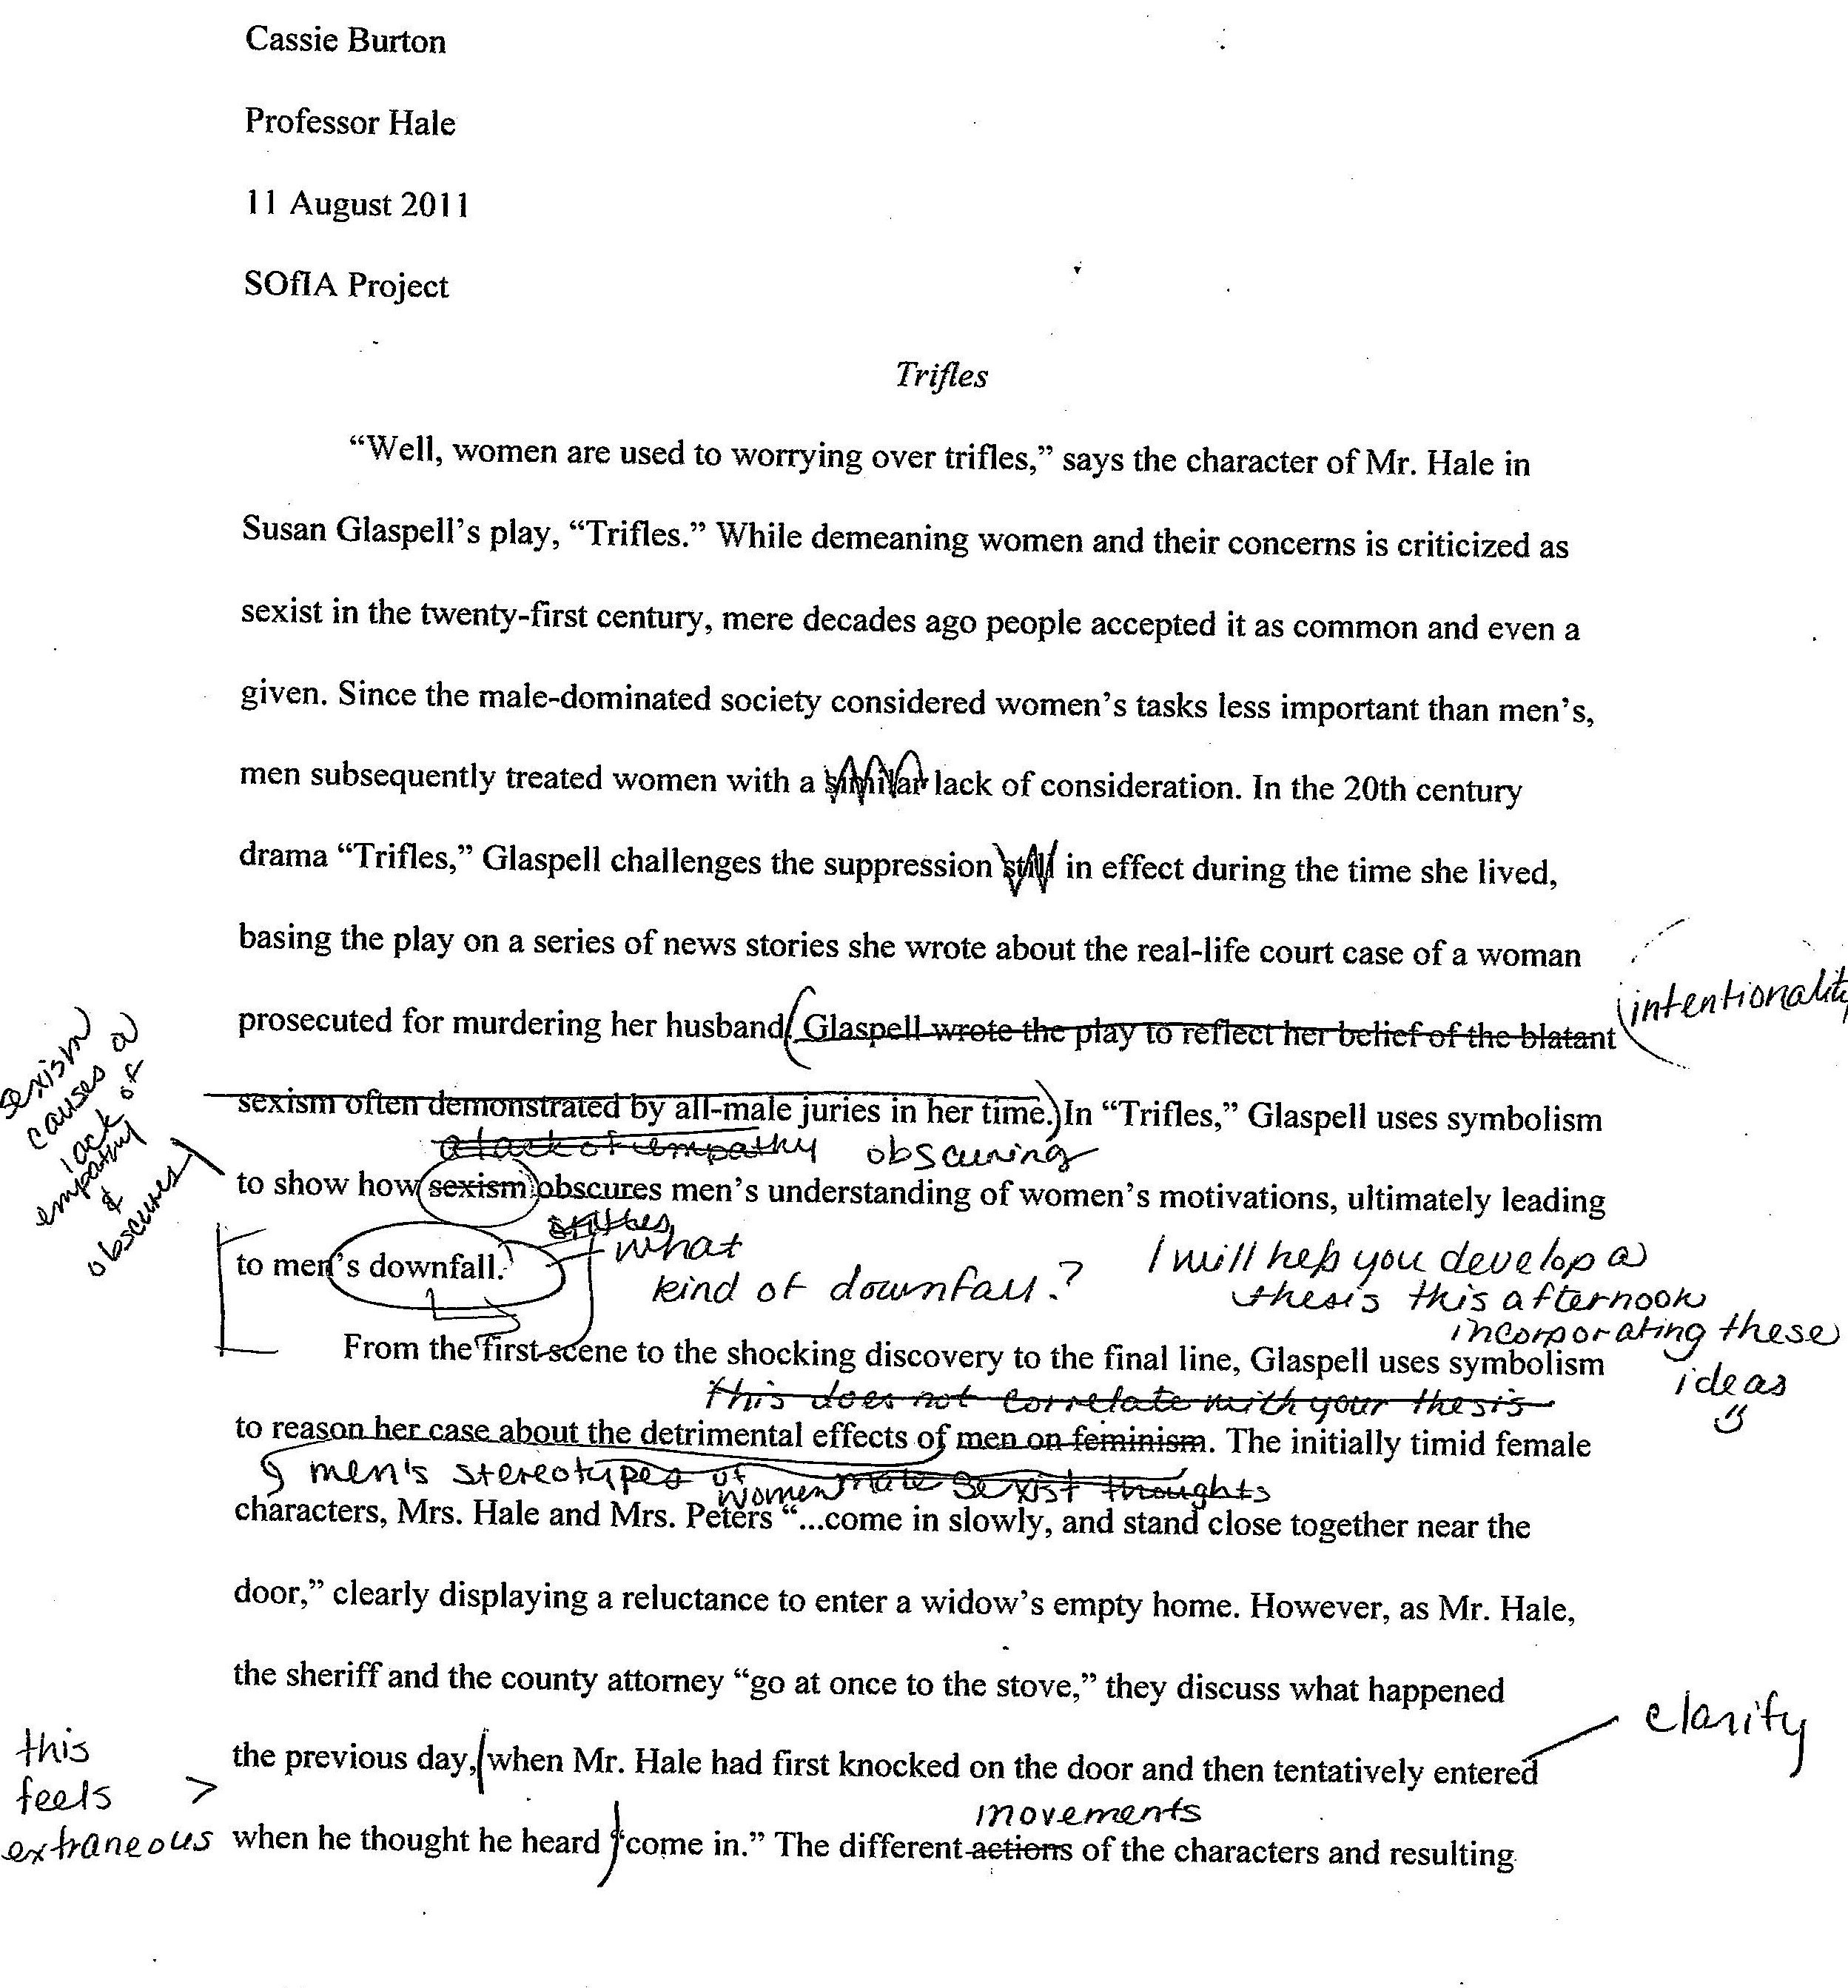 essay papers examples how to write a mla essay how to write write an analytical essay step version analysis essay rhetorical essay format rhetorical analysis essay outline